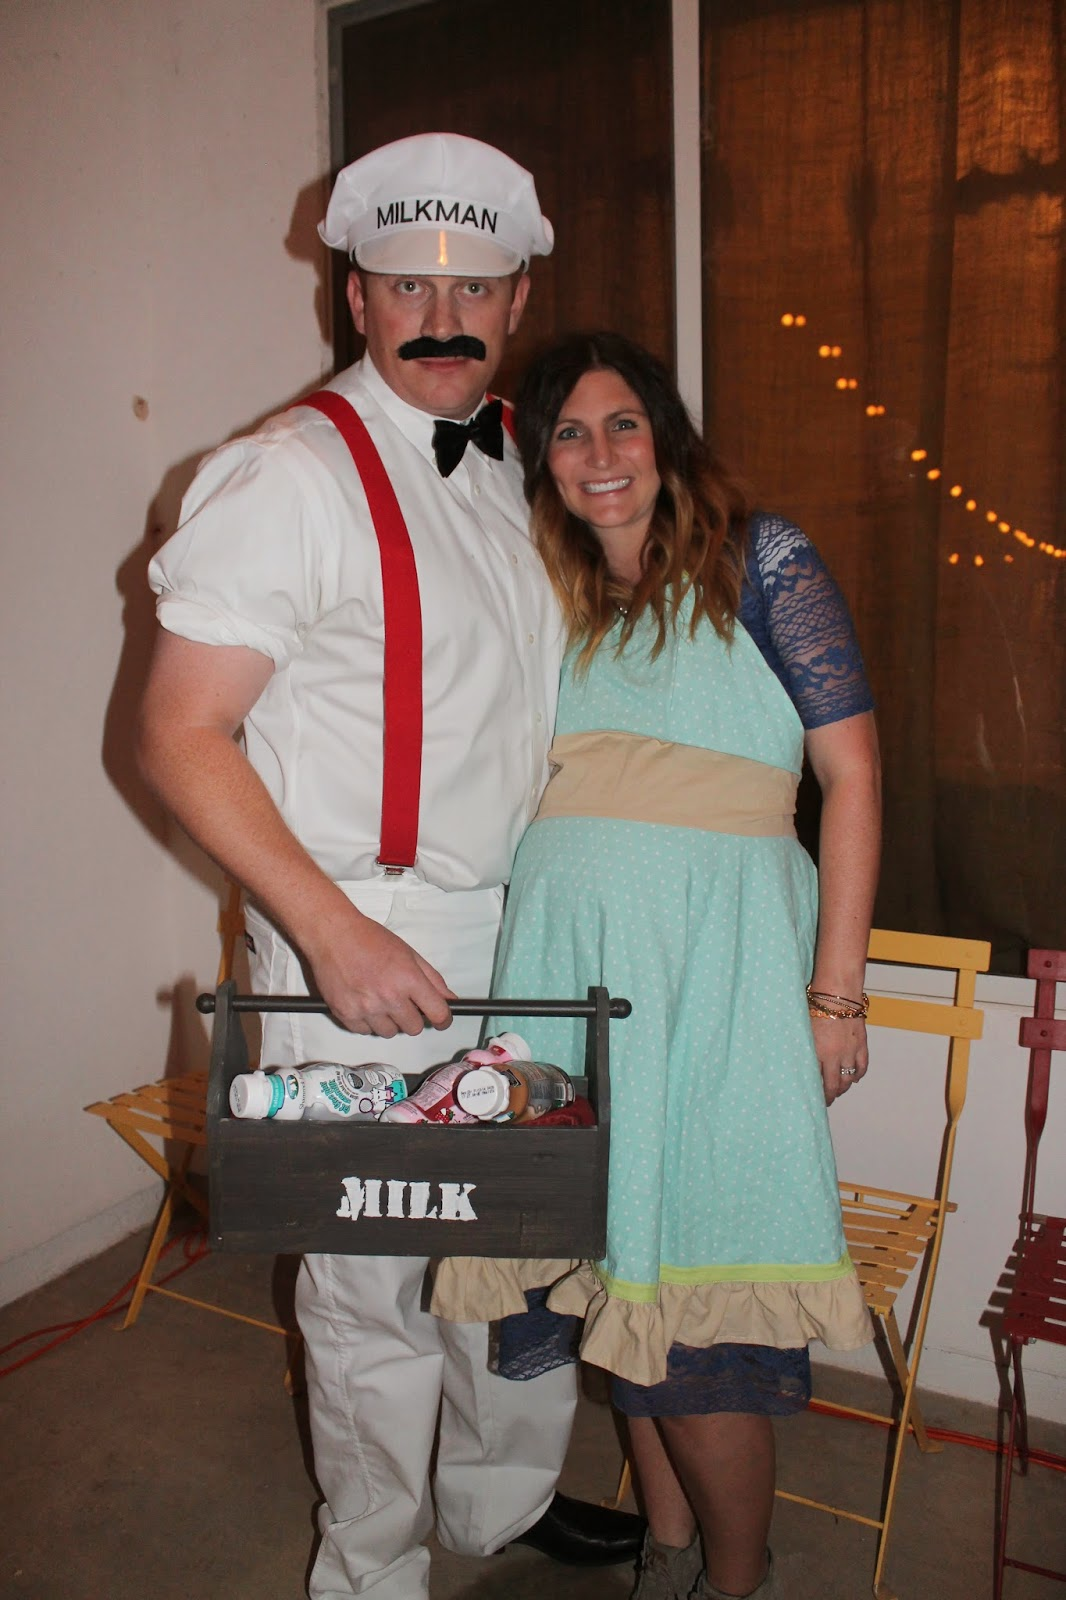 milkman and a housewife